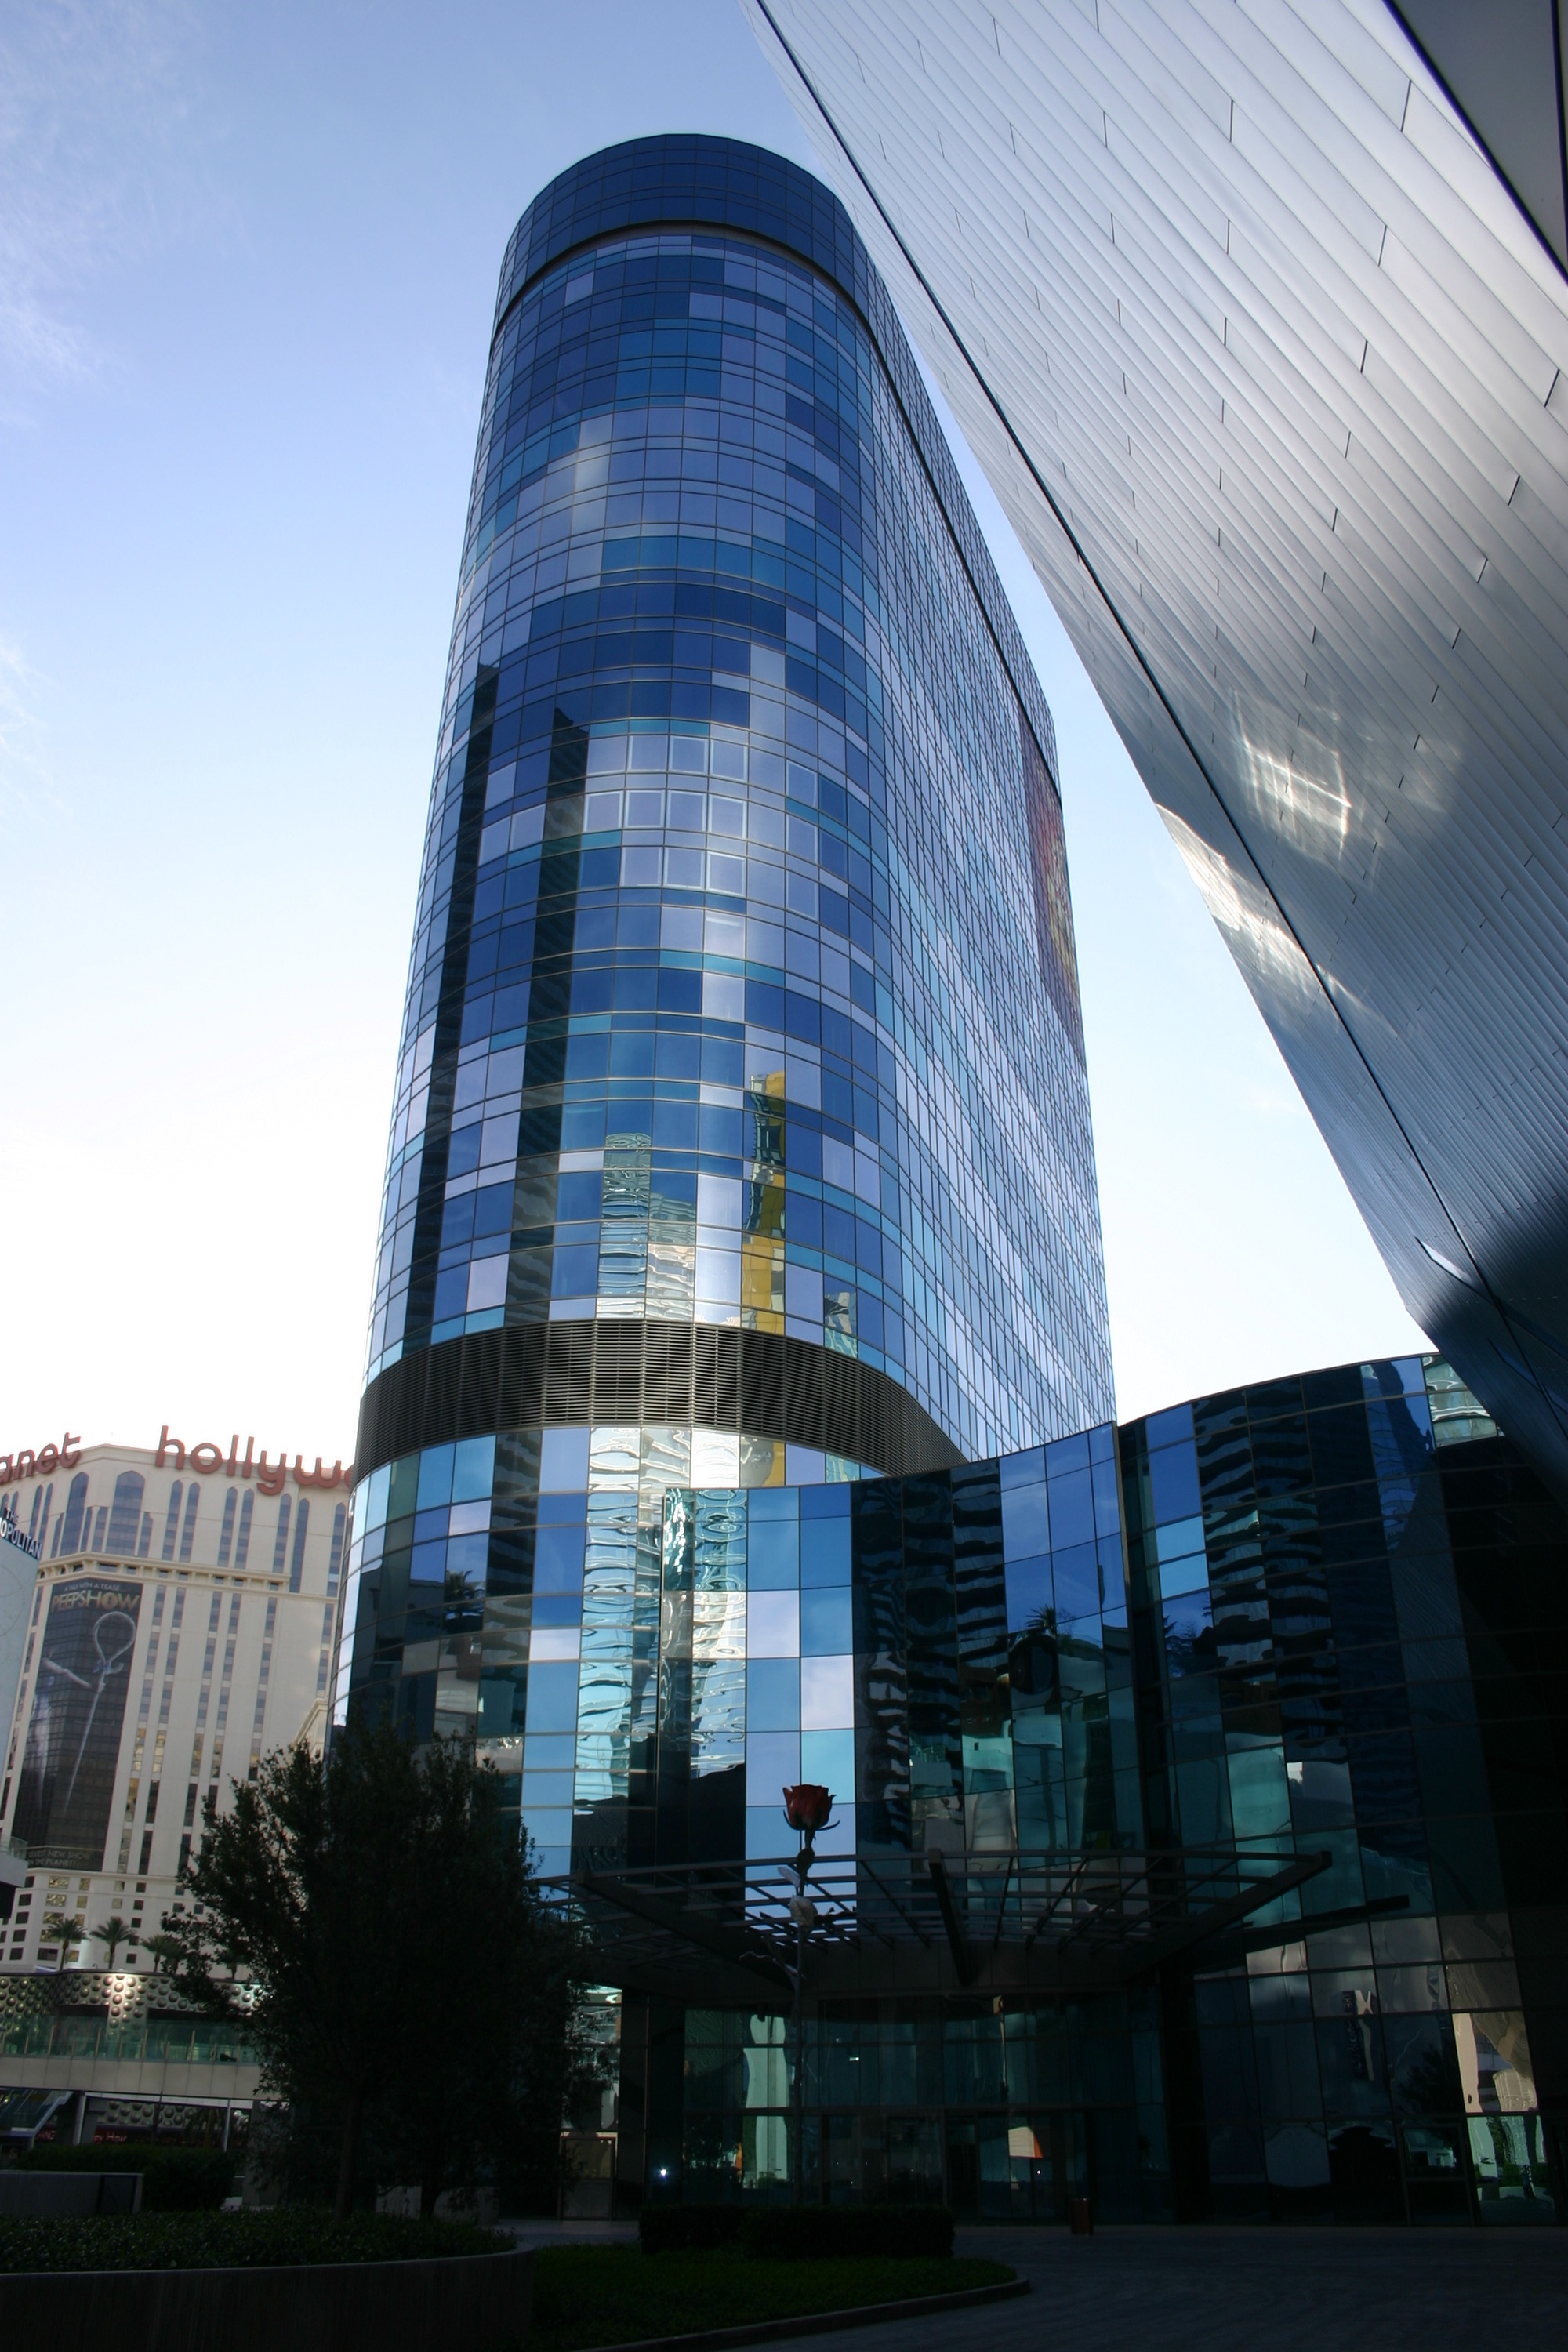 Foster partners unfinished vegas tower approved for for Design hotel daniel campanella